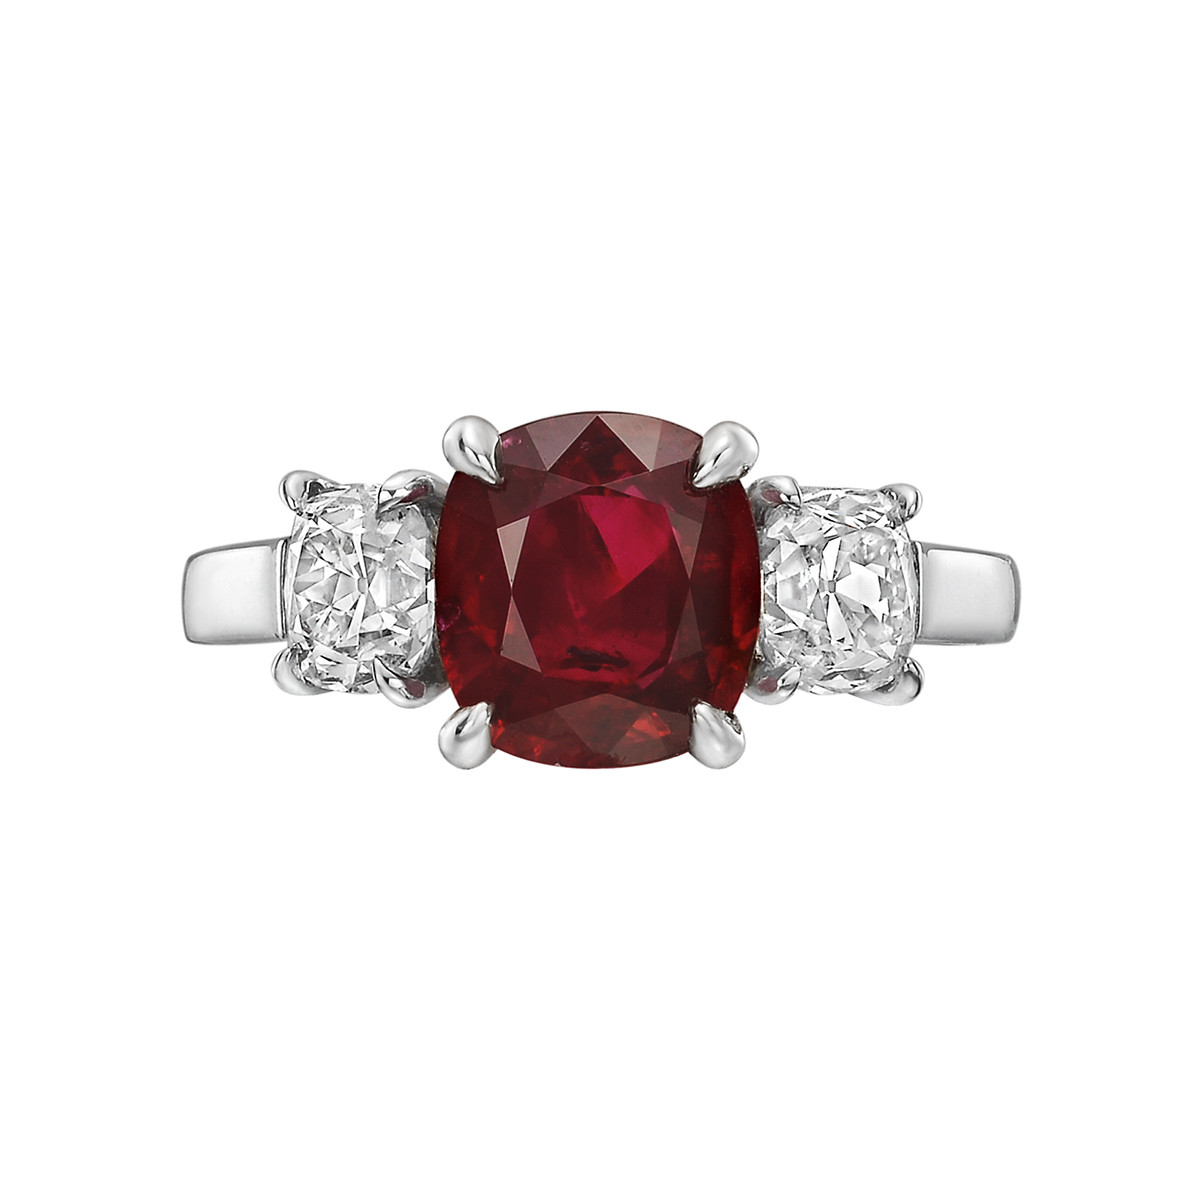 2.16 Carat Burmese Ruby & Diamond Ring